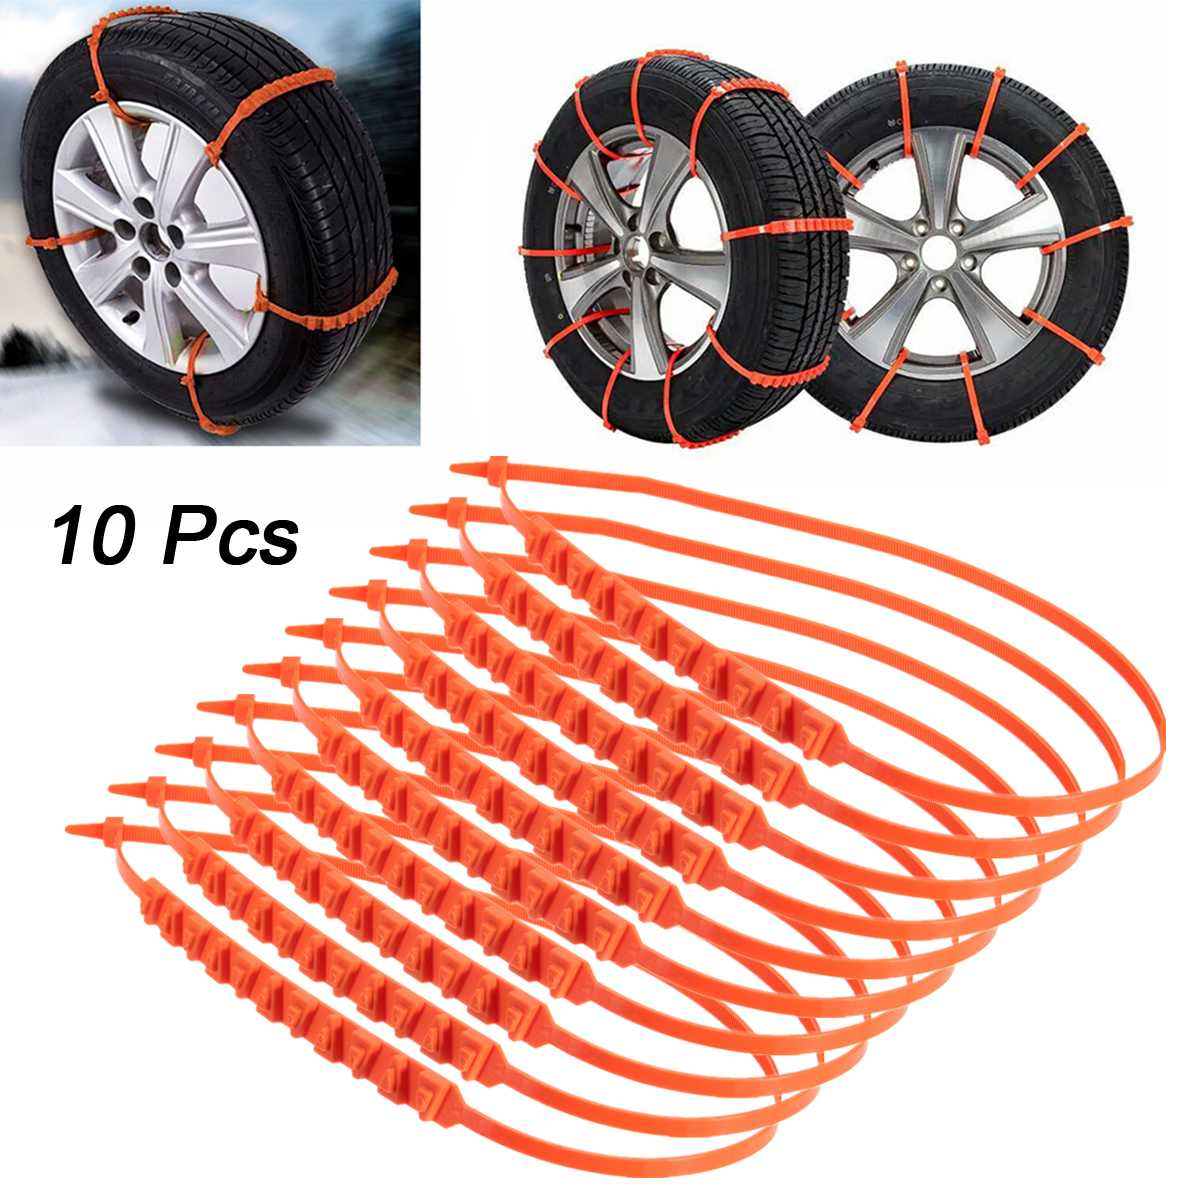 5pcs / 10Pcs Car Snow Tire Anti-skid Chains Tire Snow Chains Wheel Tyre Cable Belt Fit Tyre Width 175-295 Snow Rain Winter Tool image